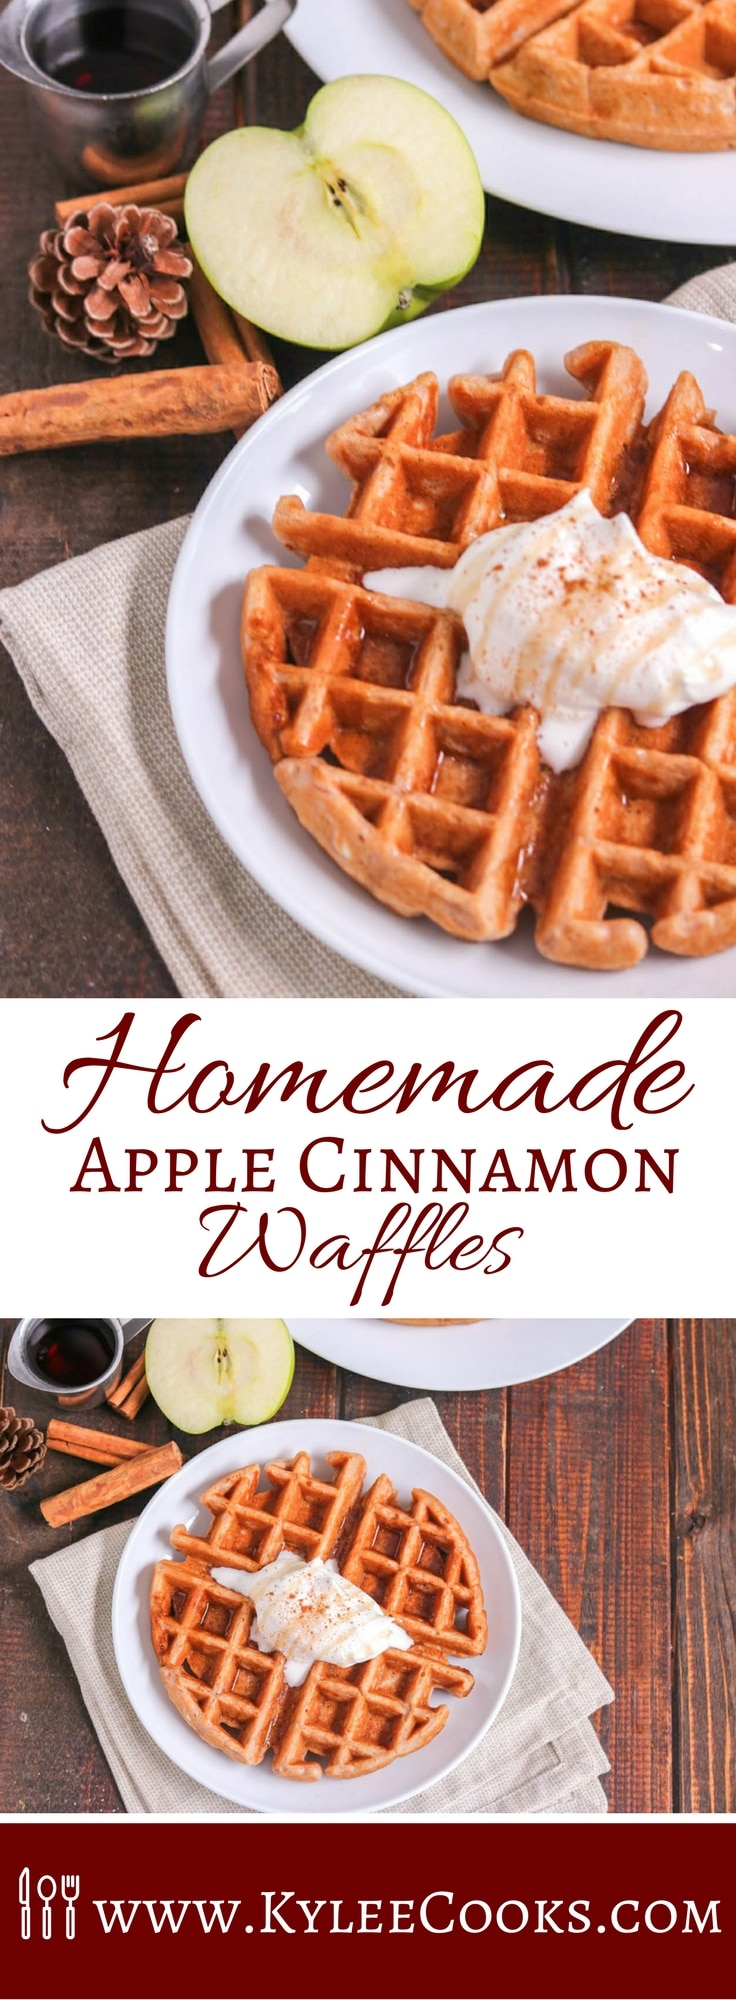 Apples and Cinnamon are the perfect flavorings for these Homemade Apple Cinnamon Waffles from scratch. Warmth, comfort and so much yum! The whole family will enjoy these! #recipe #waffles #yum #breakfast